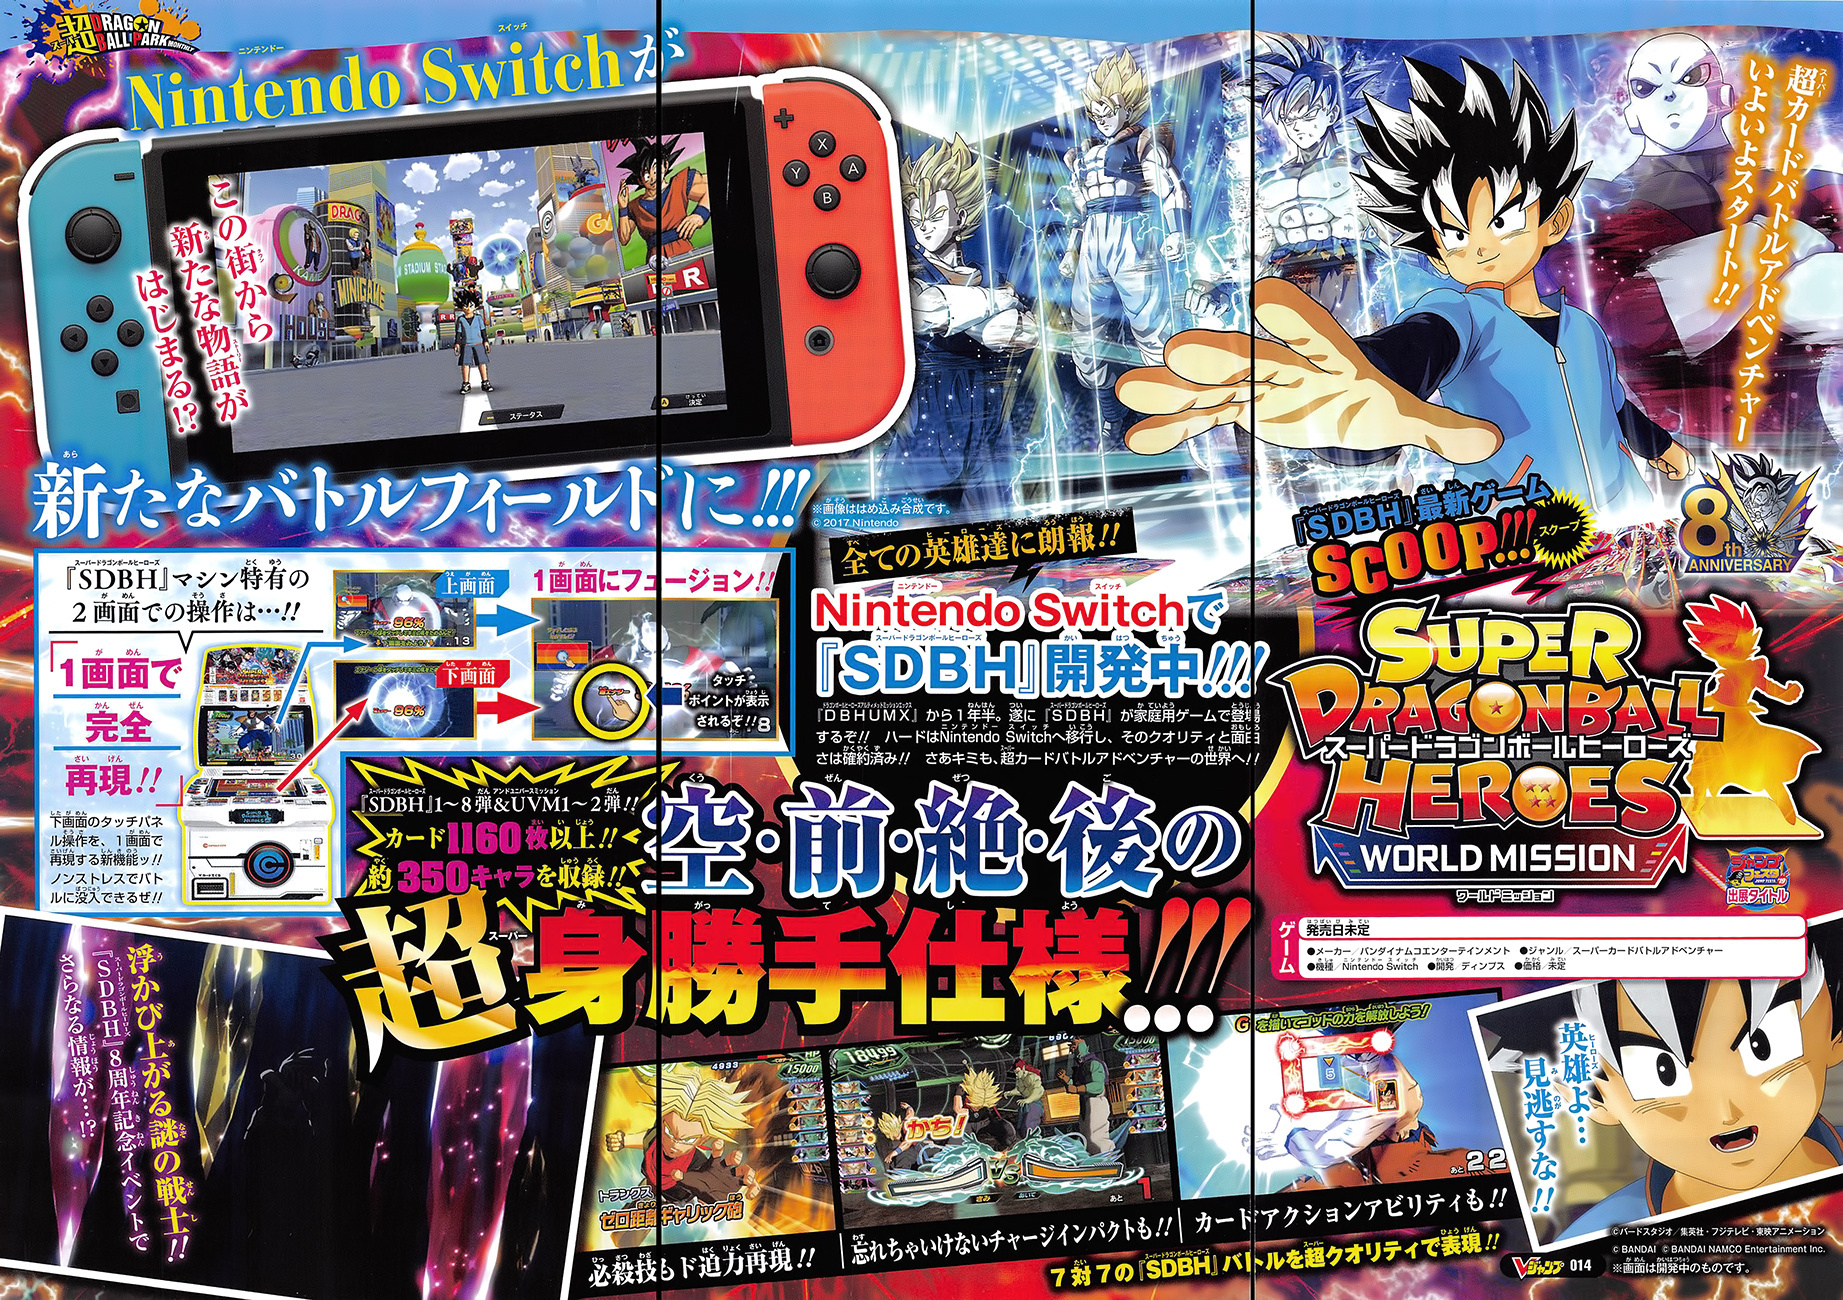 Super Dragon Ball Heroes: World Mission Announced For 2019